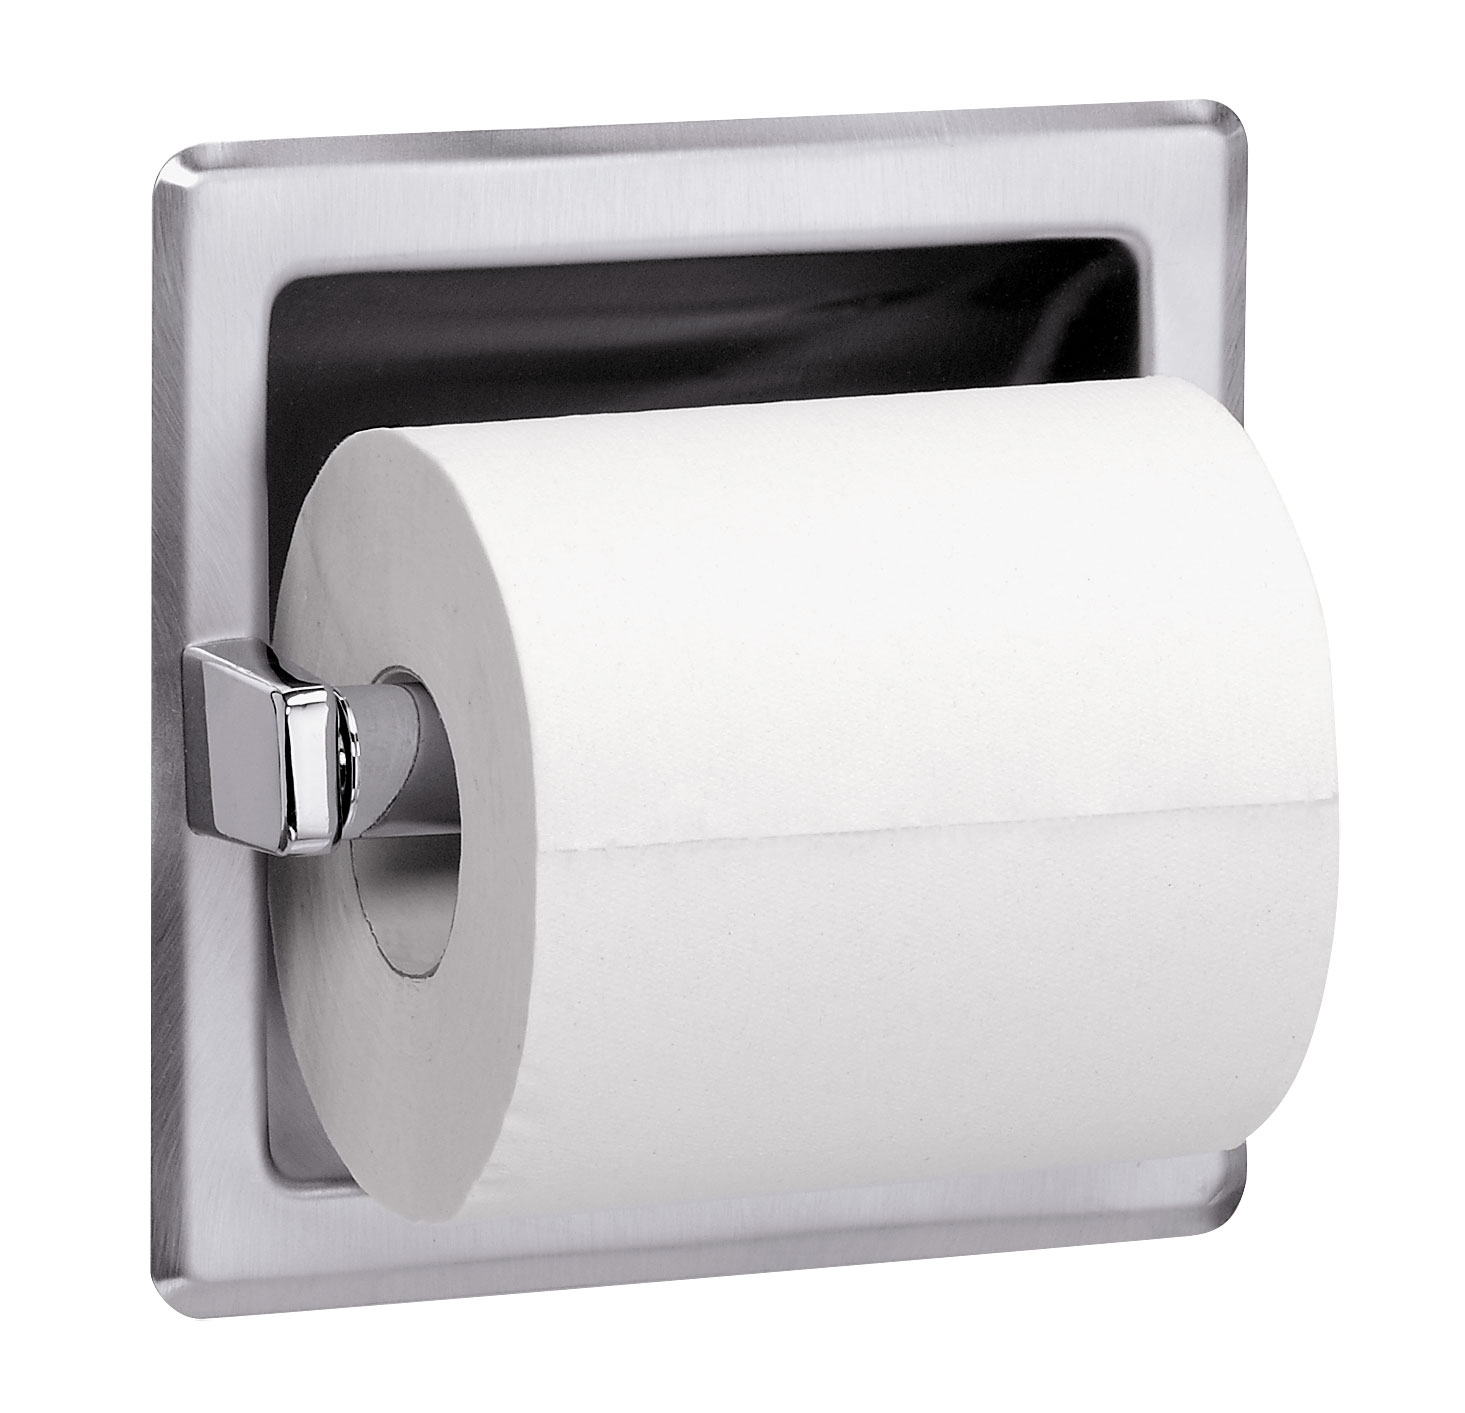 Bradley Bathroom Accessories Recessed Single Roll Toilet Tissue Dispenser  Bradley Corporation